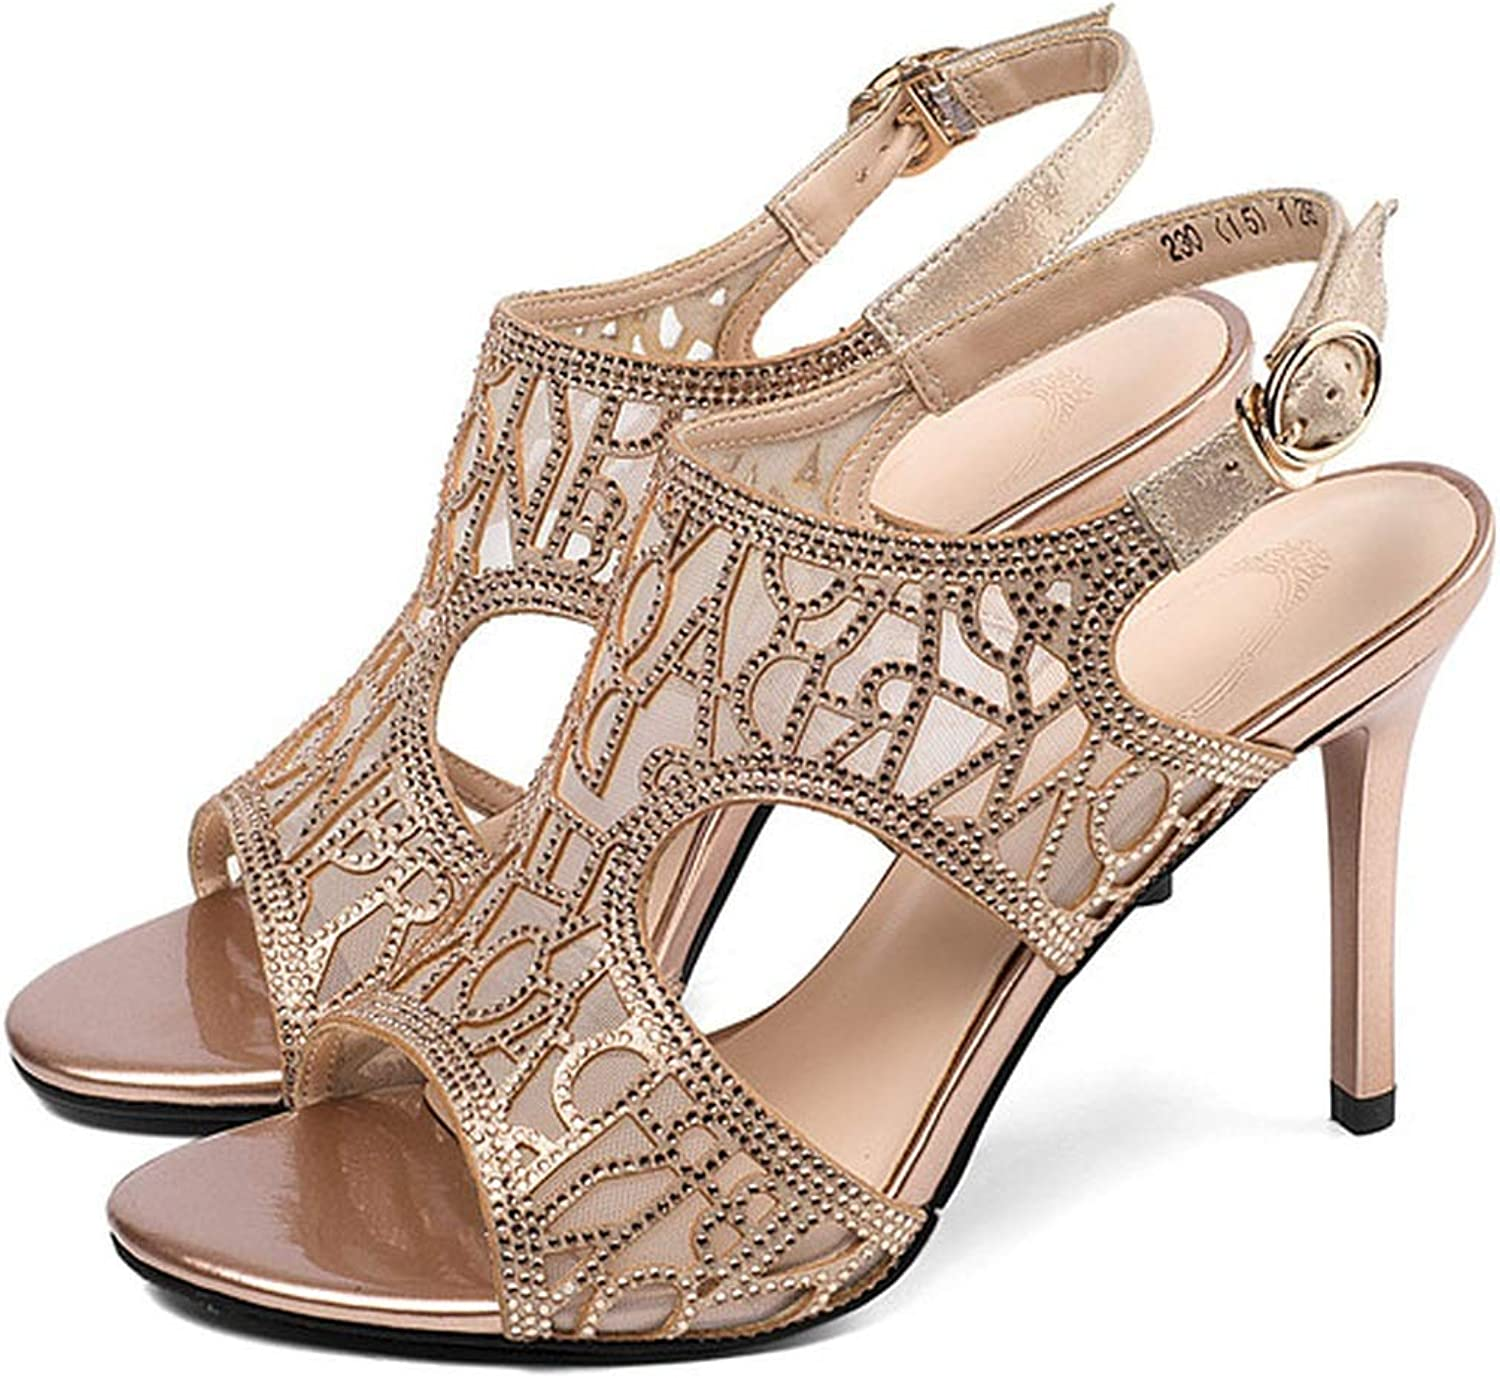 Easy-S-E-H Summer Breathable Mesh Pumps Women Concise High Heels shoes